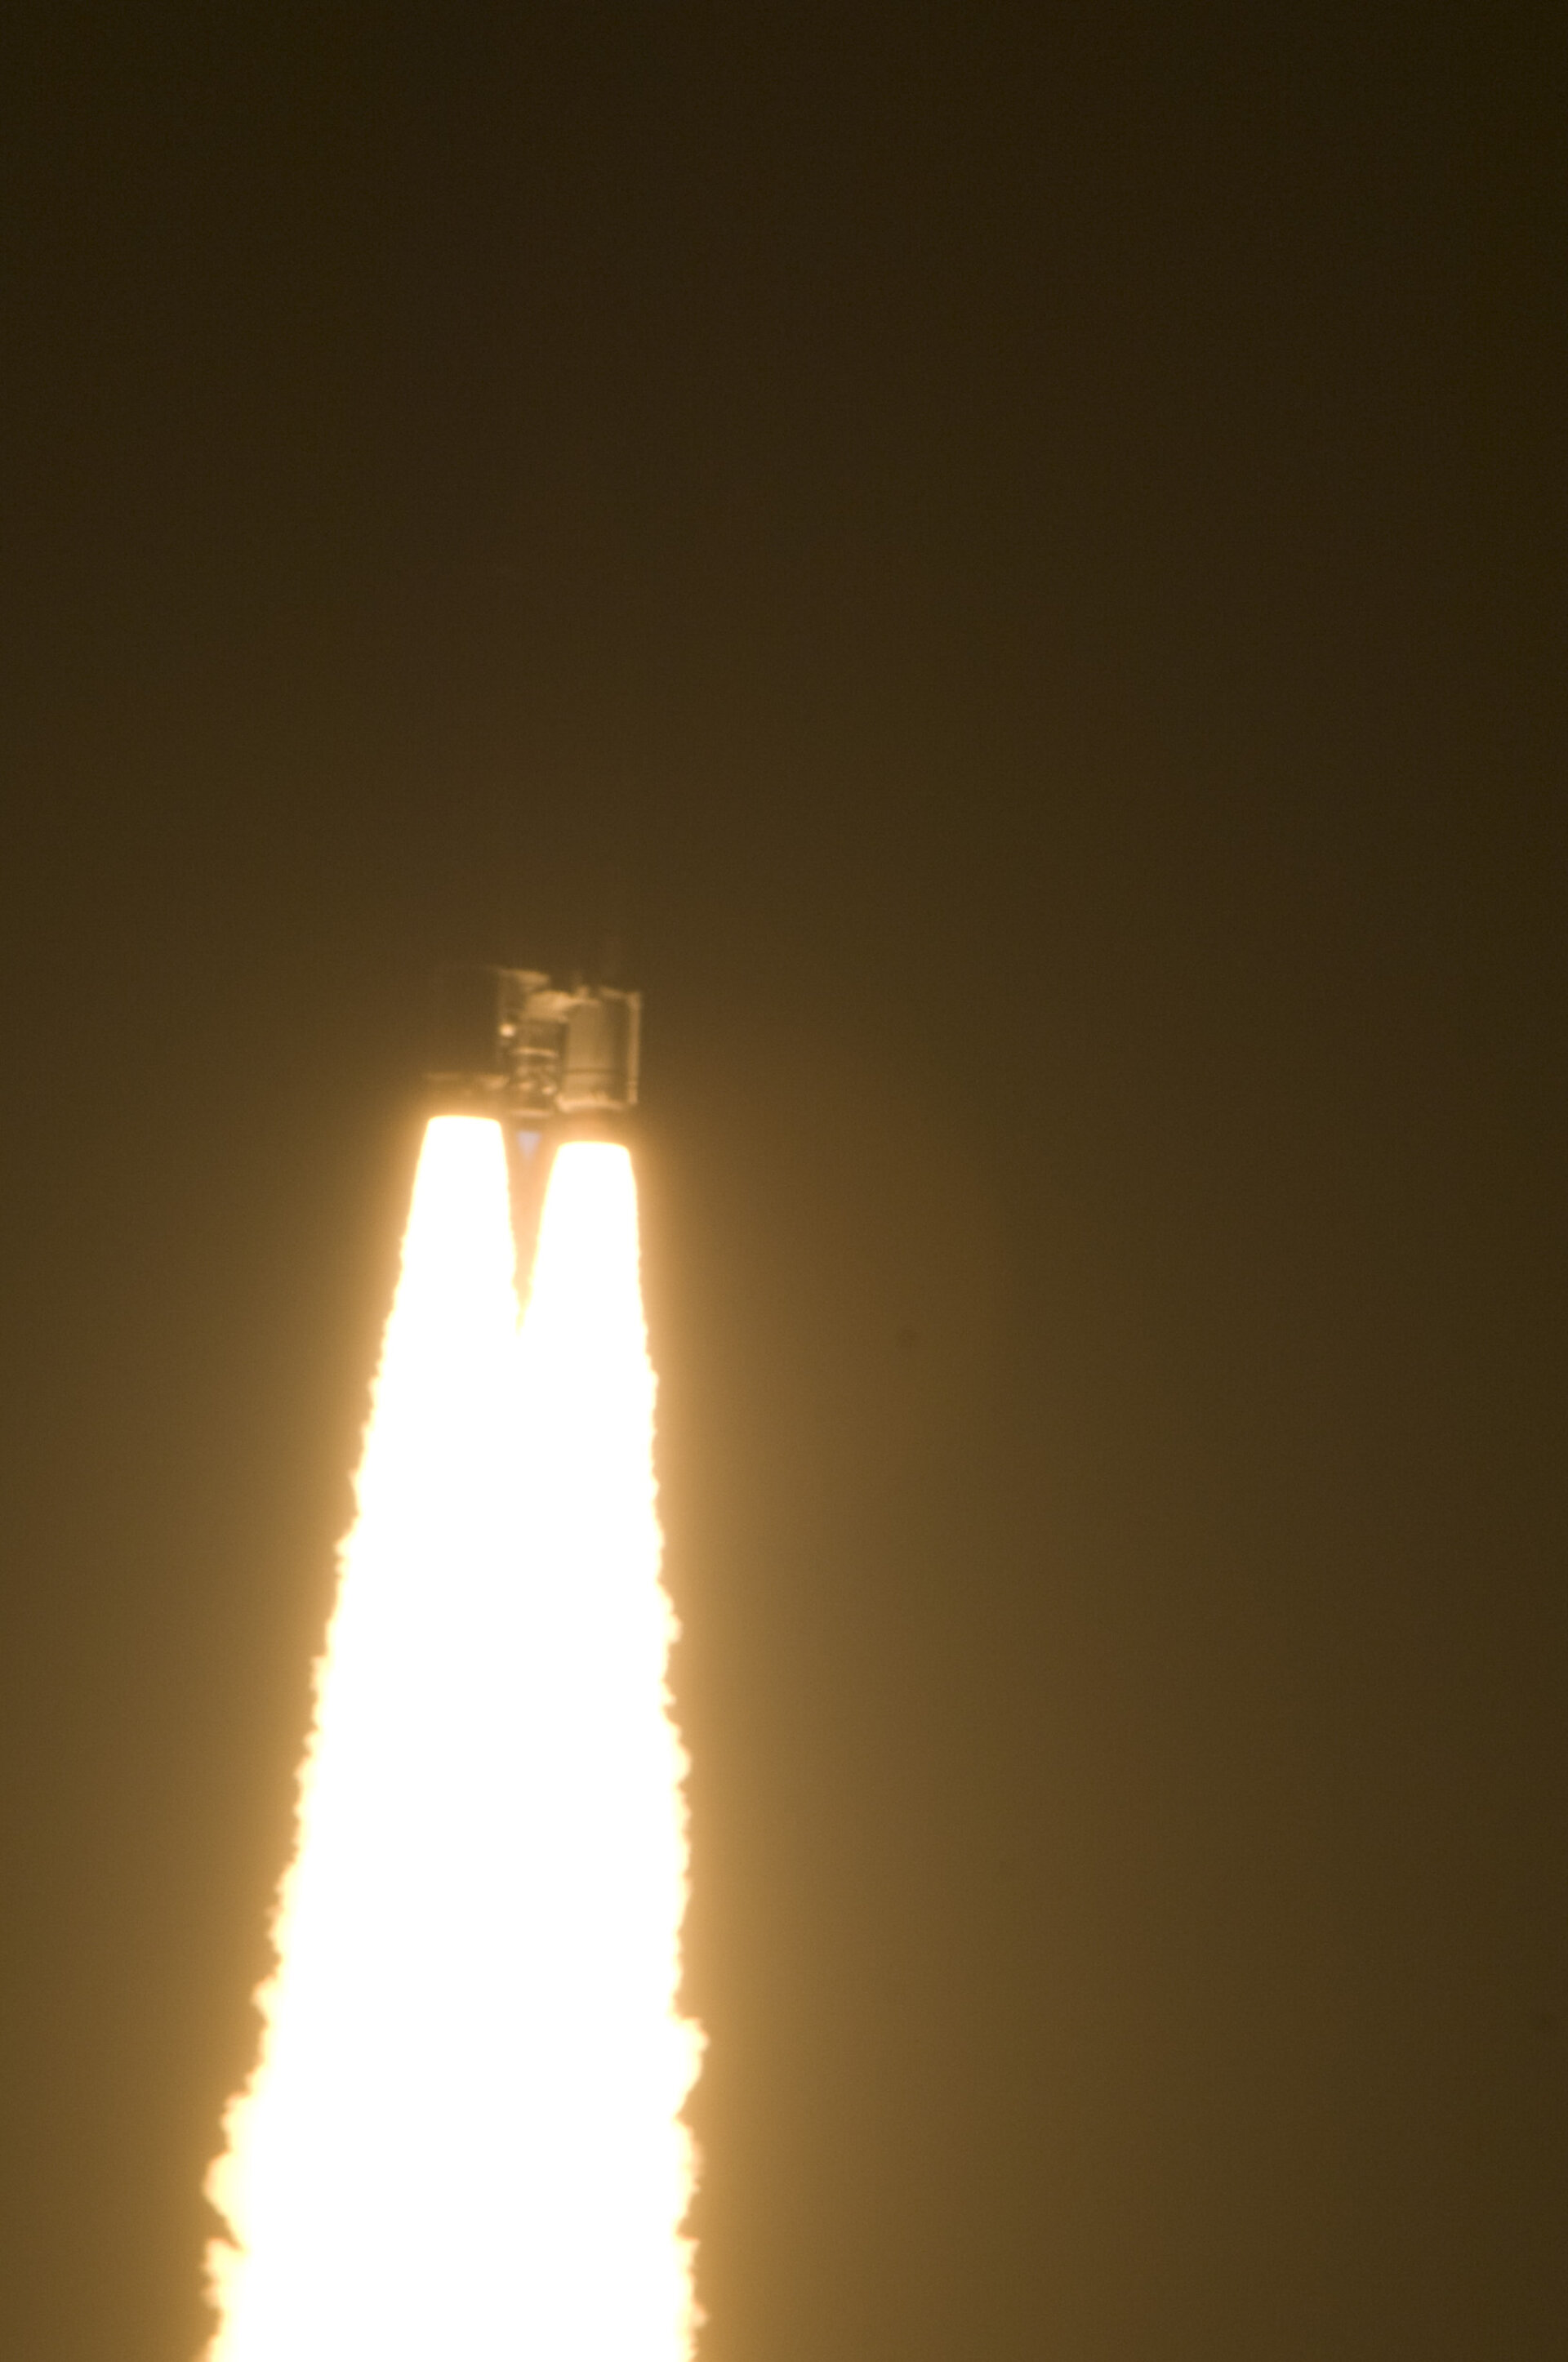 Liftoff of Ariane 5 ES-ATV into night sky over Kourou